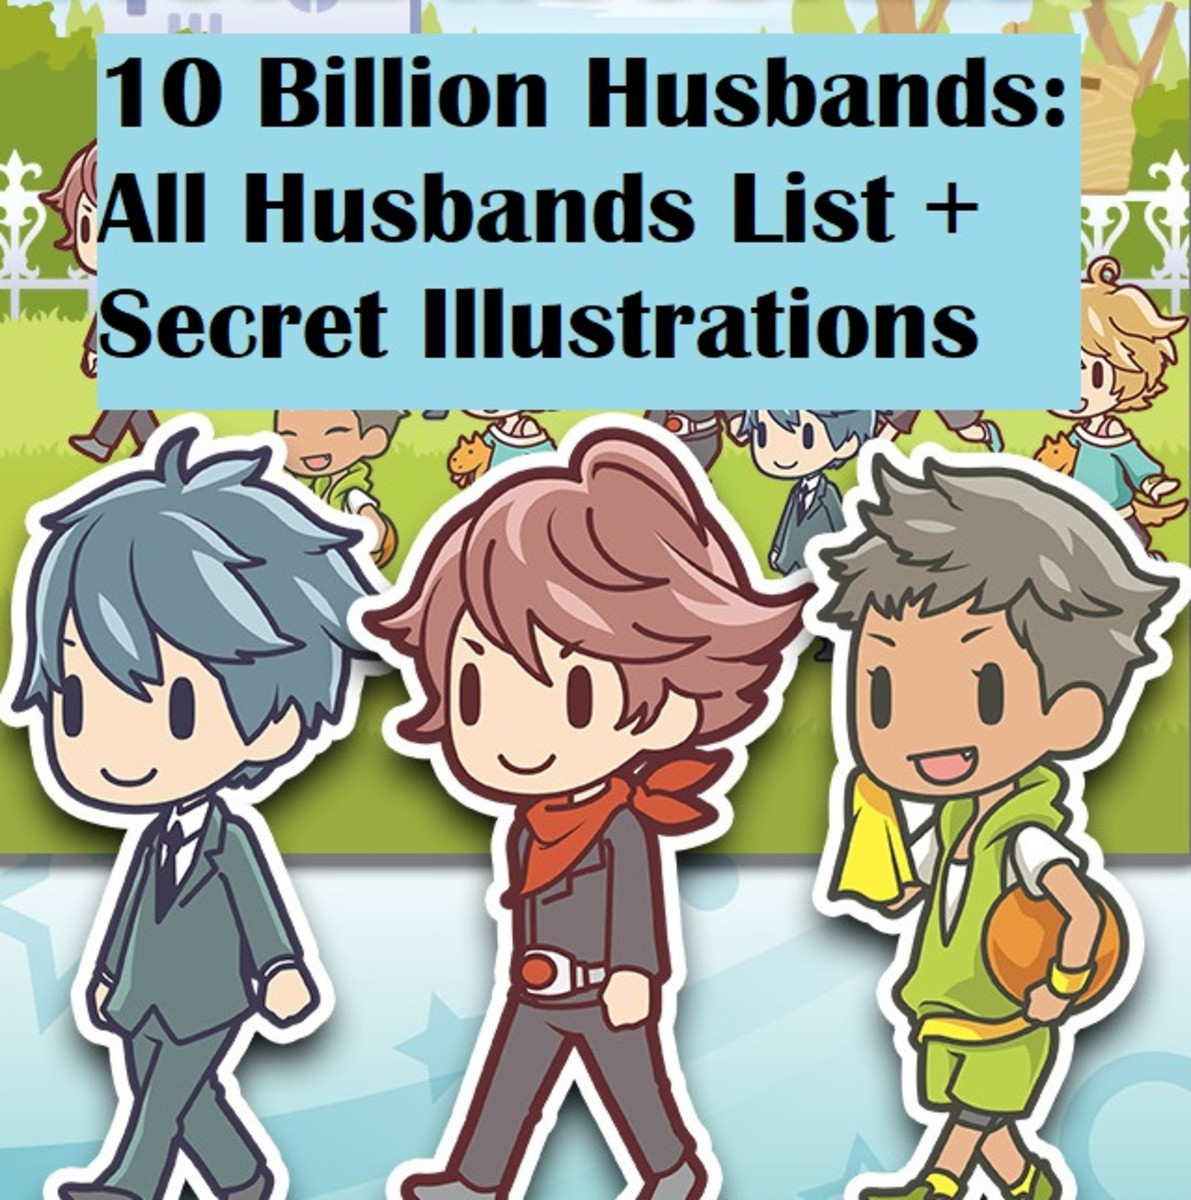 10B Husbands: All Husbands List and Secret Illustrations